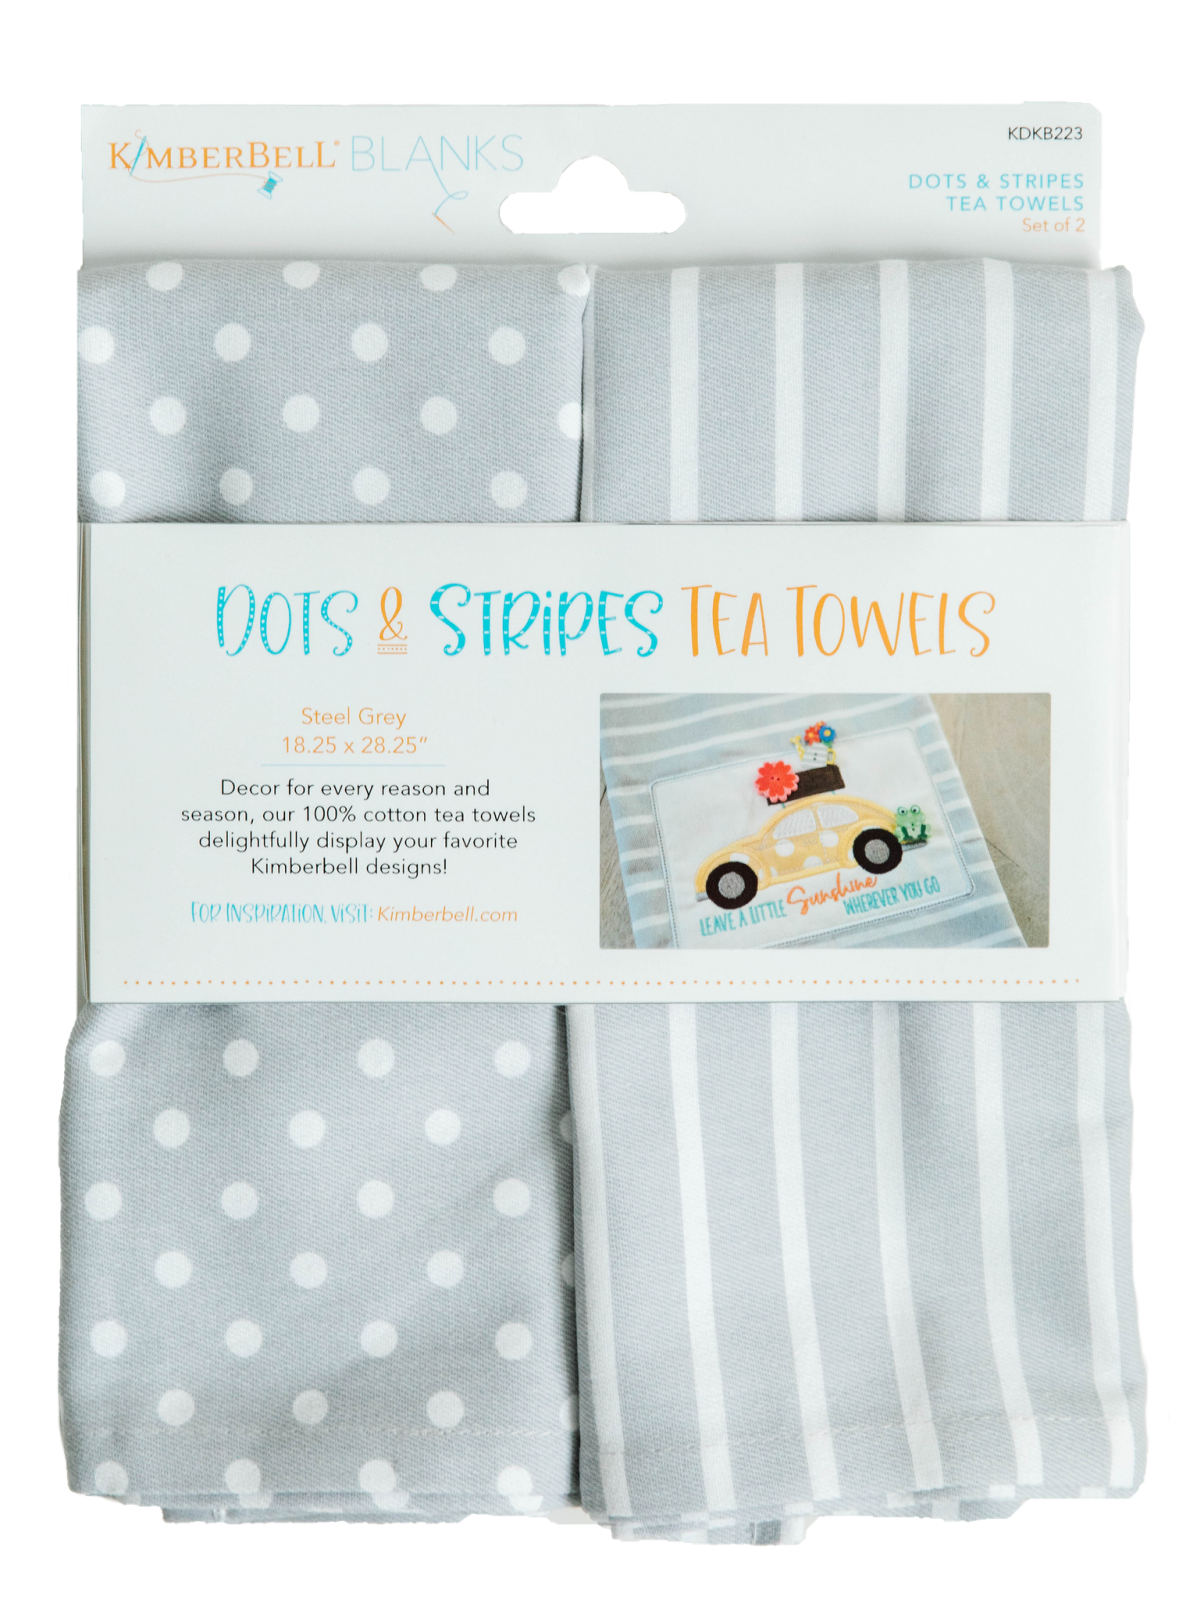 Kimberbell Dots & Stripes Tea Towels 2 pk - Steel Grey